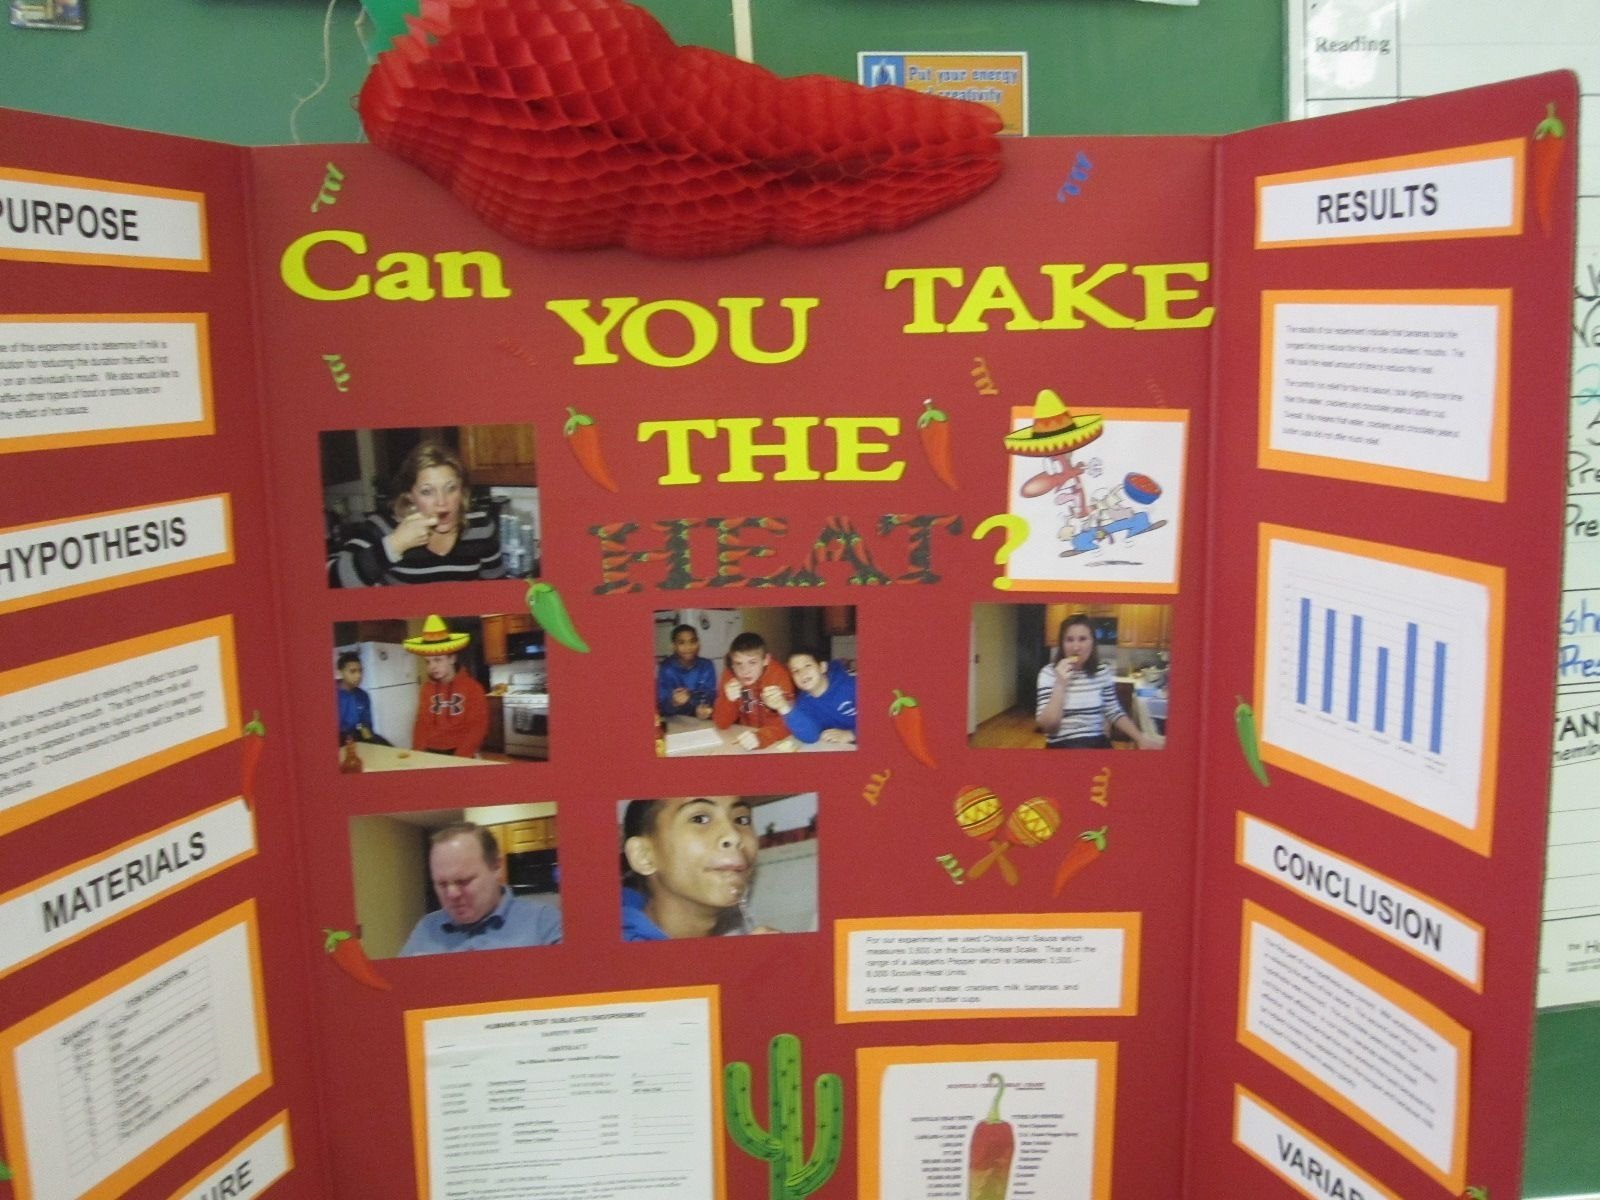 10 Fabulous Science Fair Projects Ideas For 6Th Graders second grade science fair topics kids as ideas free sixth grade 5 2020